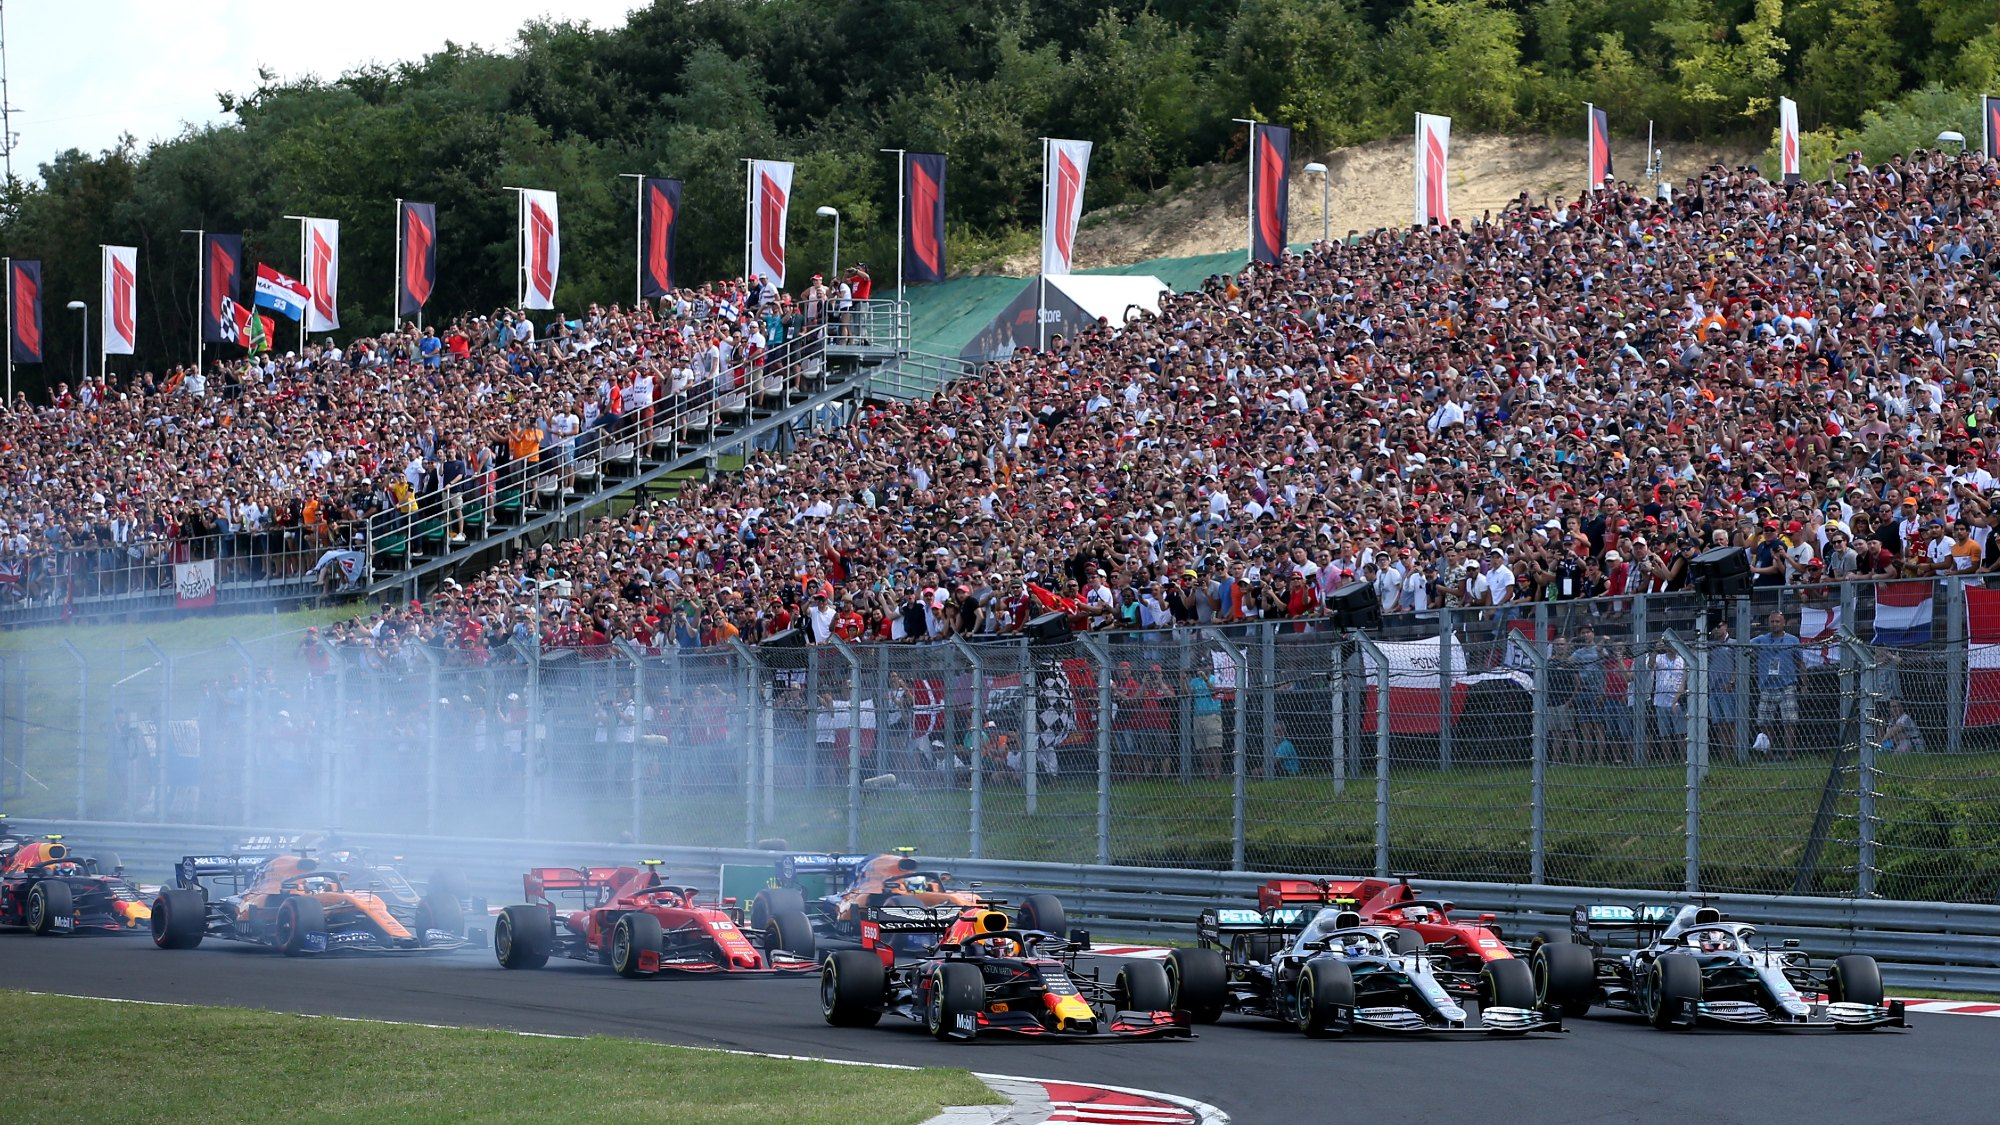 2020 Hungarian Grand Prix preview: Red Bull fightback or Mercedes walkover?